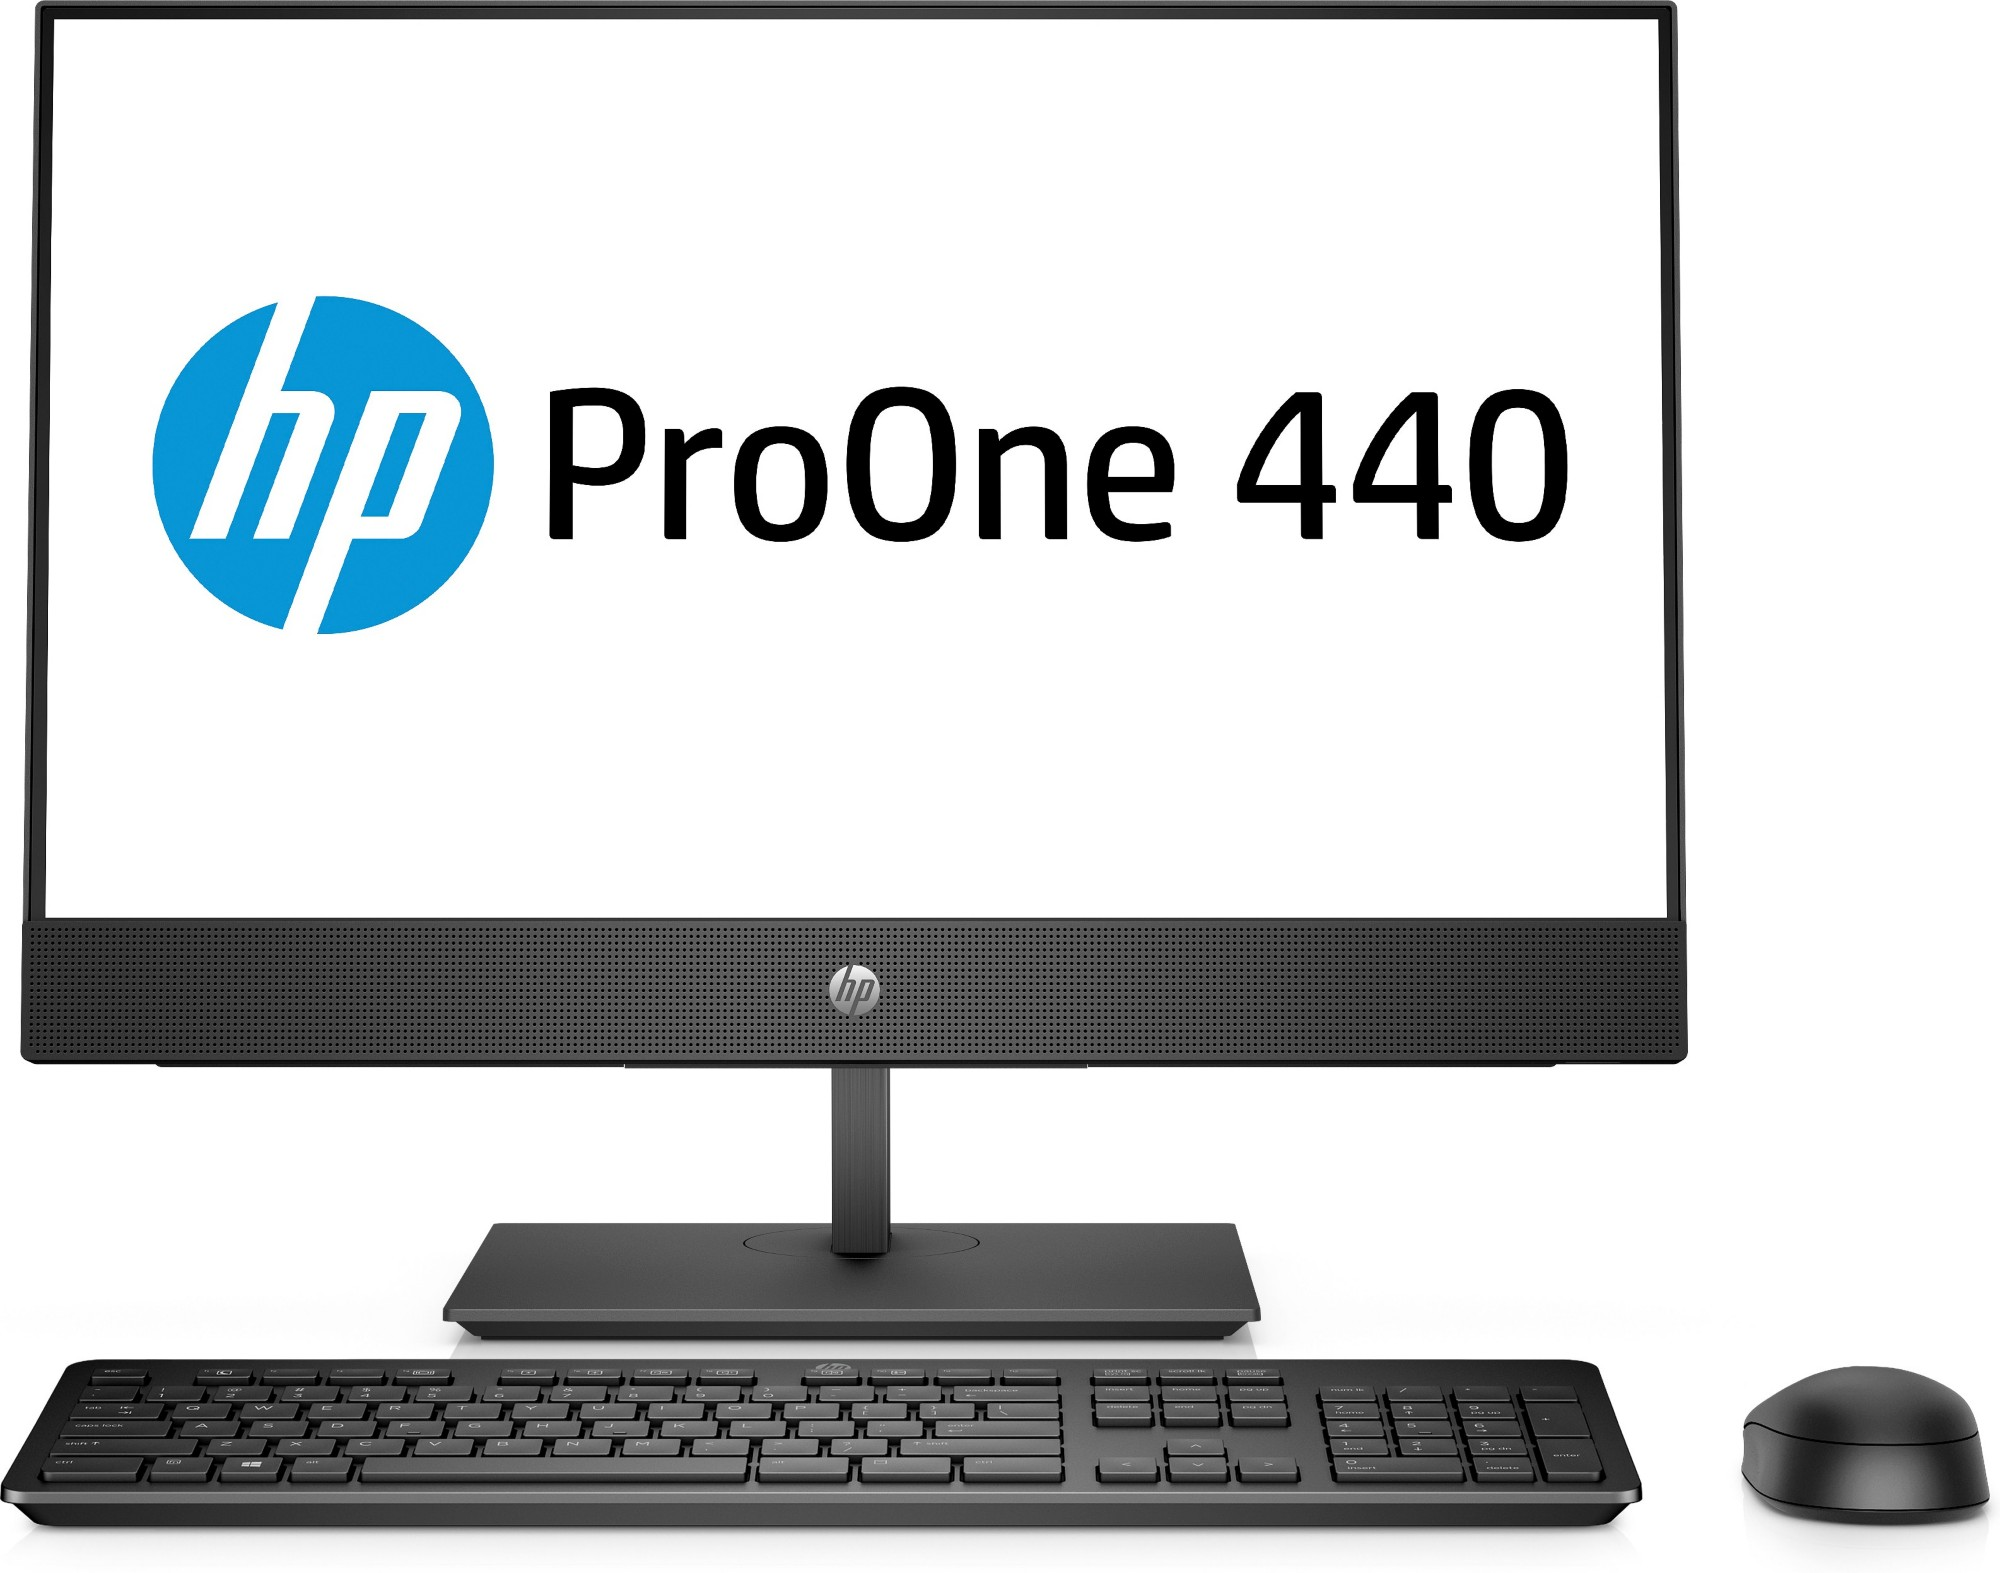 HP ProOne 440 G4 23.8-inch Non-Touch All-in-One Business PC 4NT86EA#ABU